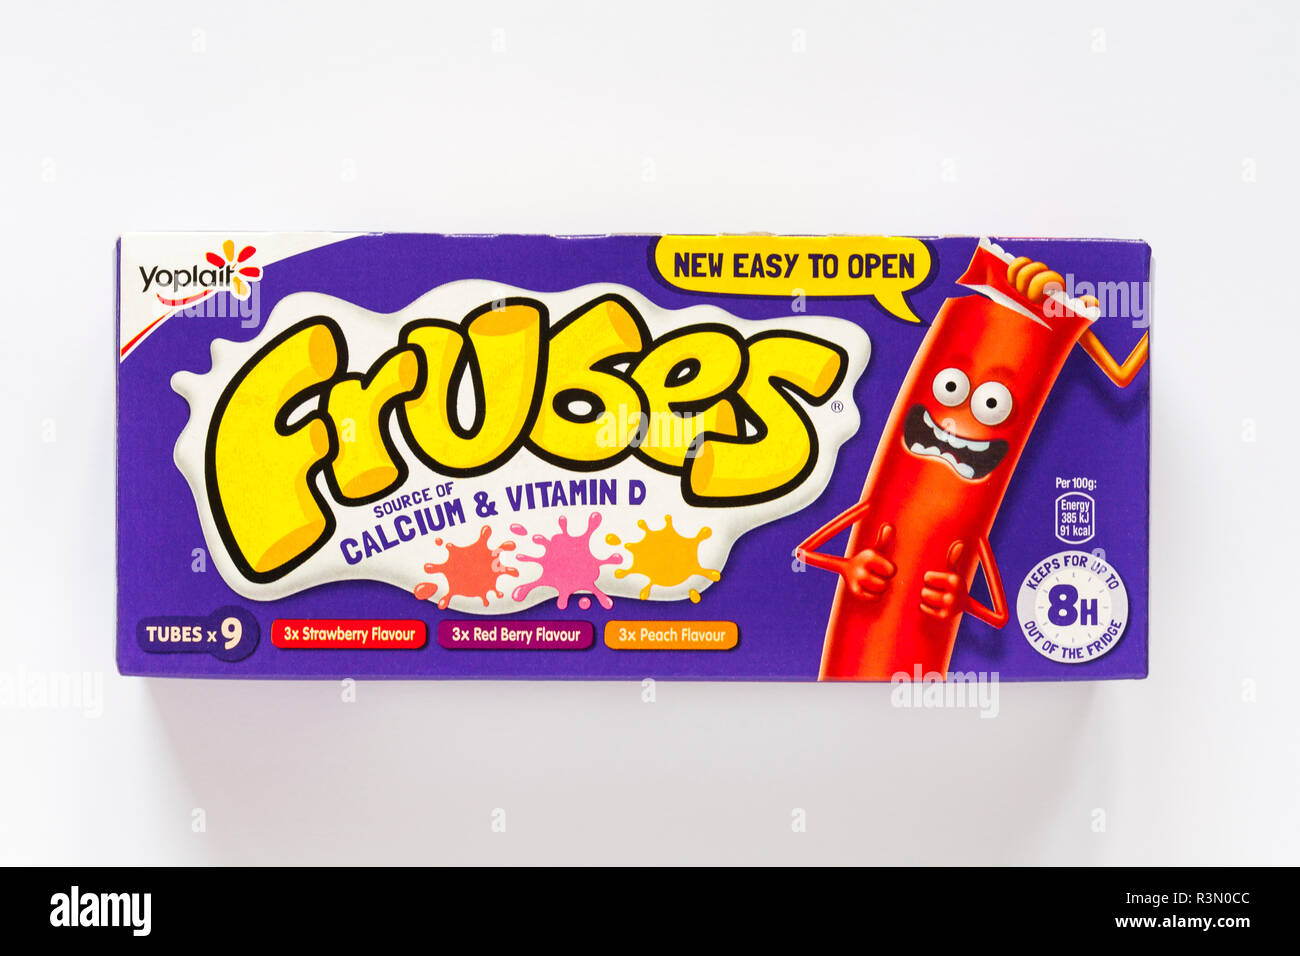 box of Yoplait Frubes, fromage frais in a tube yoghurt yogurt set on white background - also known as Go-GURT and Yoplait Tubes - Stock Image